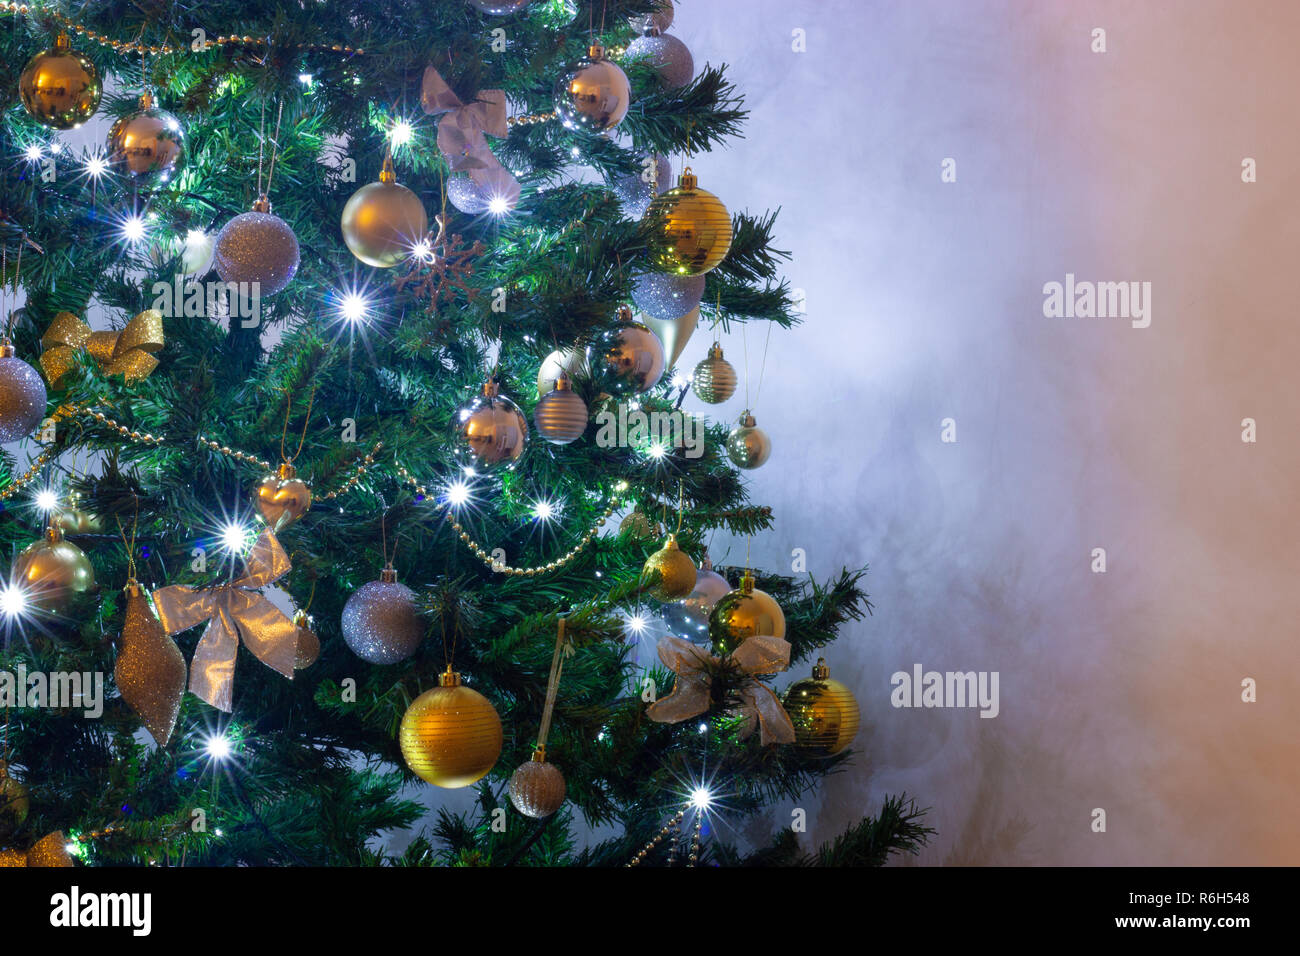 A Green Fir Christmas Tree With White Lights And Silver And Gold Decorations Against A White Background Stock Photo Alamy